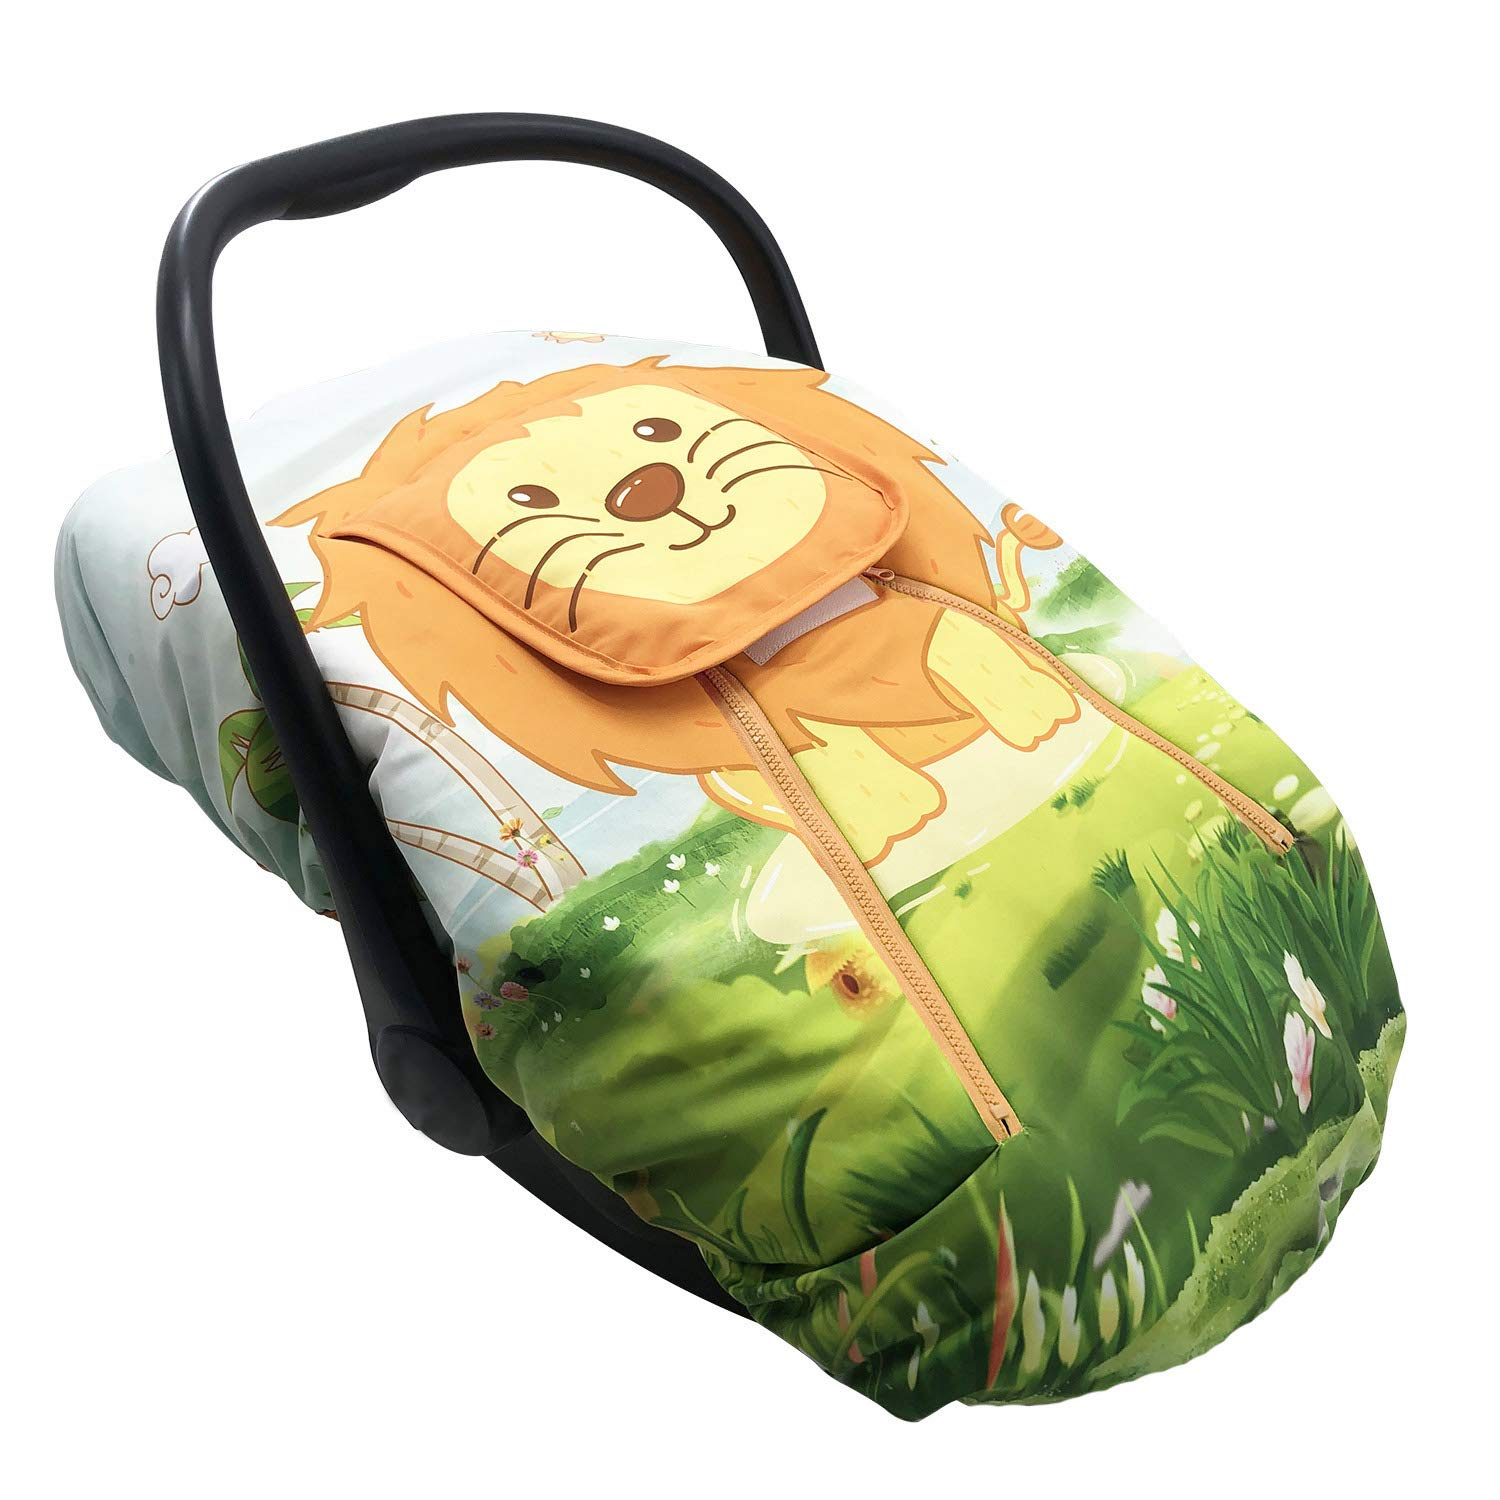 Cute Cartoon Infant Car Seat Covers, Soft Warm Breathable and Windproof Canopy for Baby Car Seat (Cute Lion)